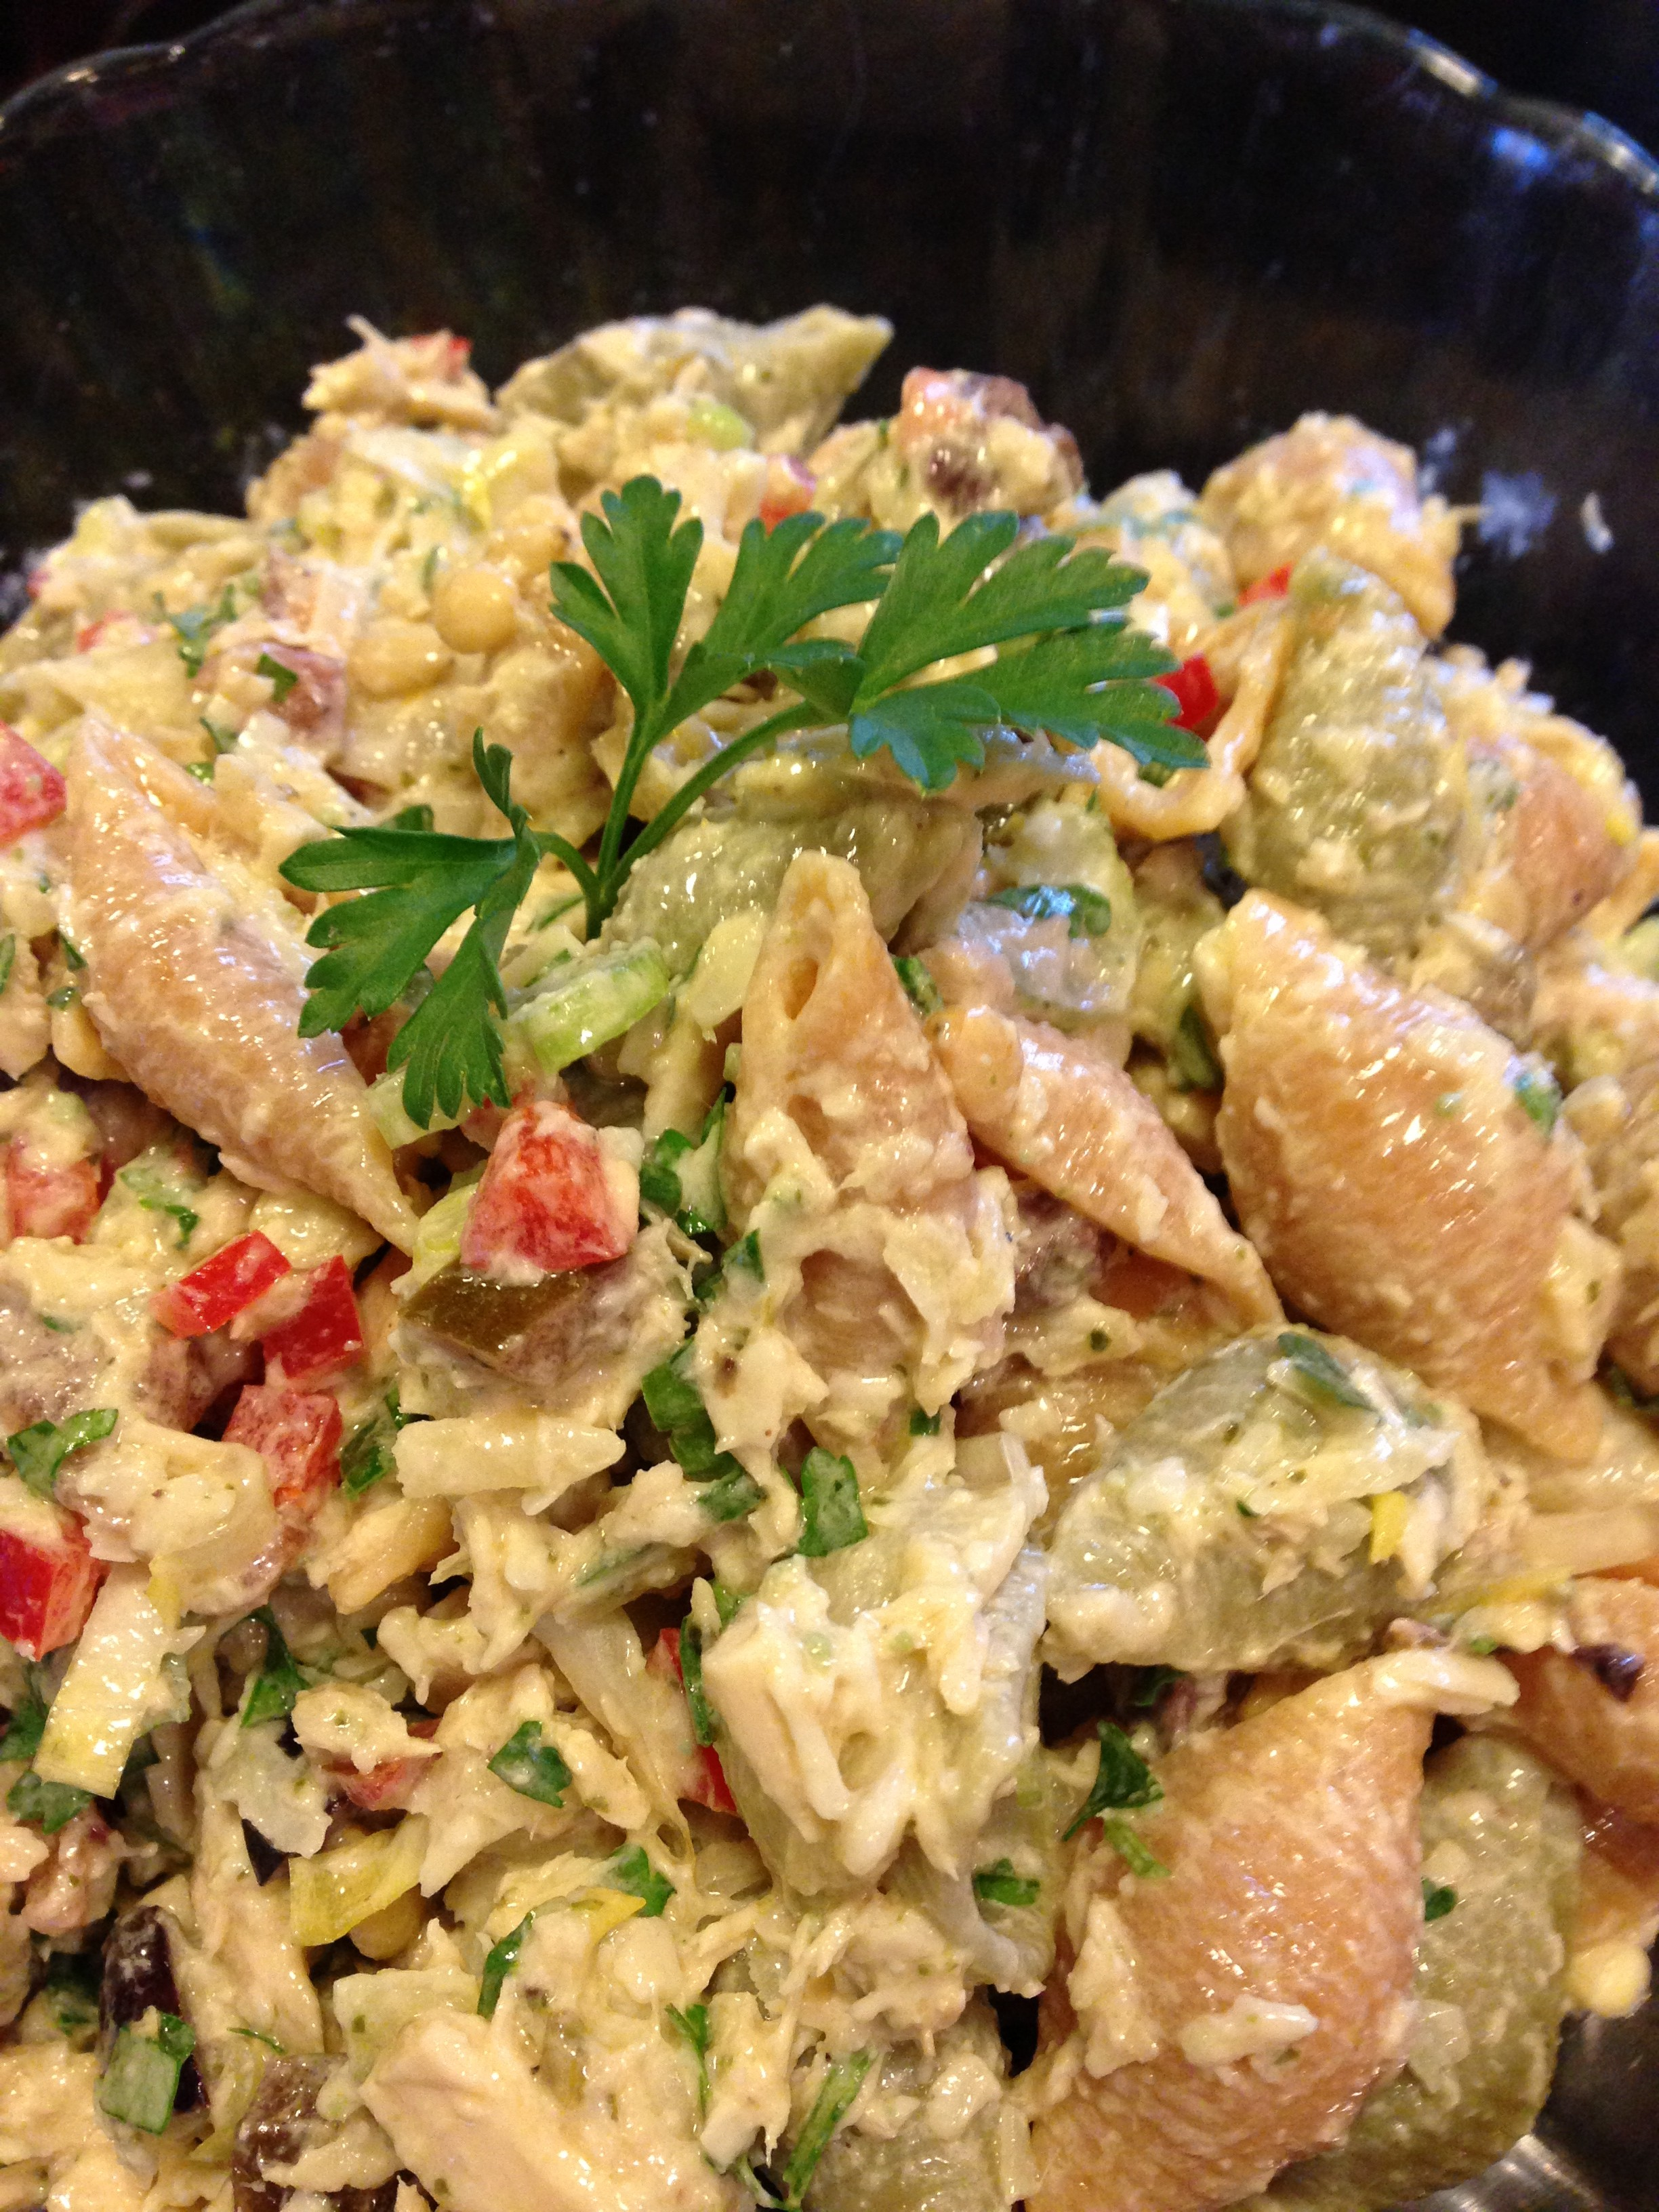 Mediterranean-Style Tuna Pasta Salad with Lemony Pesto Dressing (Photo Credit: Adroit Ideals)